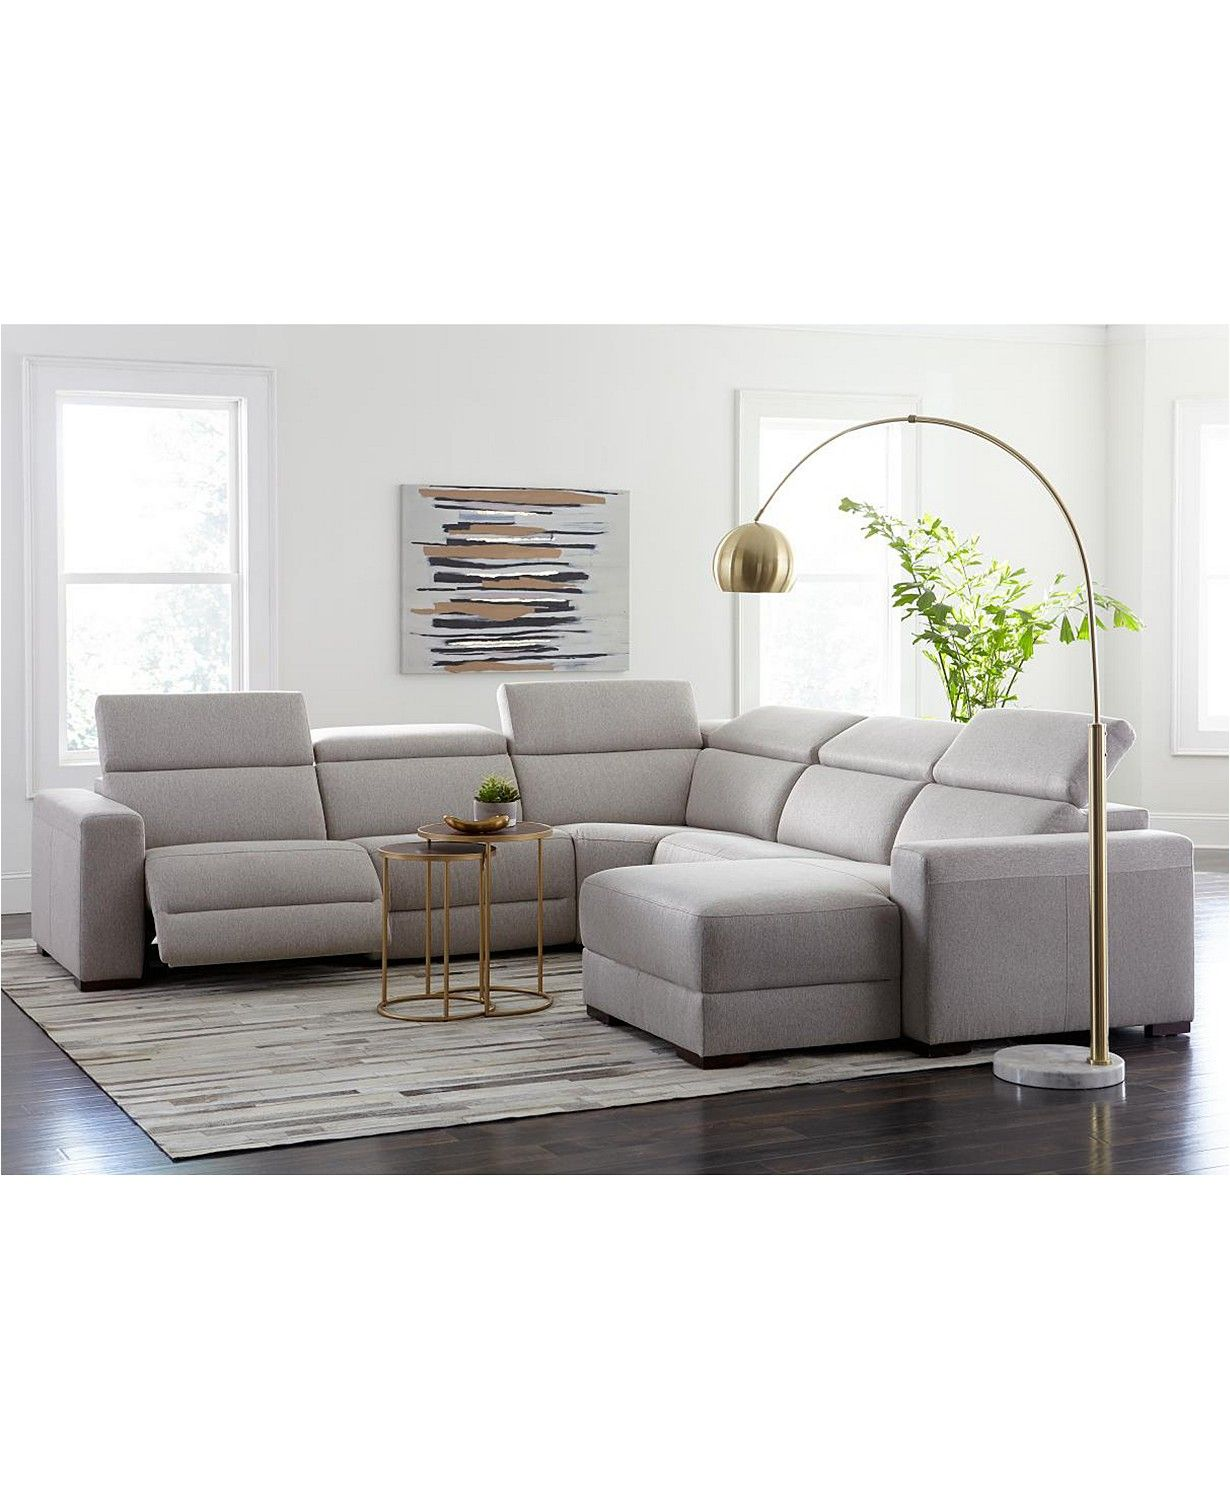 Furniture Nevio Leather Power Reclining Sectional Sofa With Articulating Headrests Collection Created For Macy S Reviews Furniture Macy S In 2020 Power Reclining Sectional Sofa Sectional Sofa With Chaise Reclining Sectional